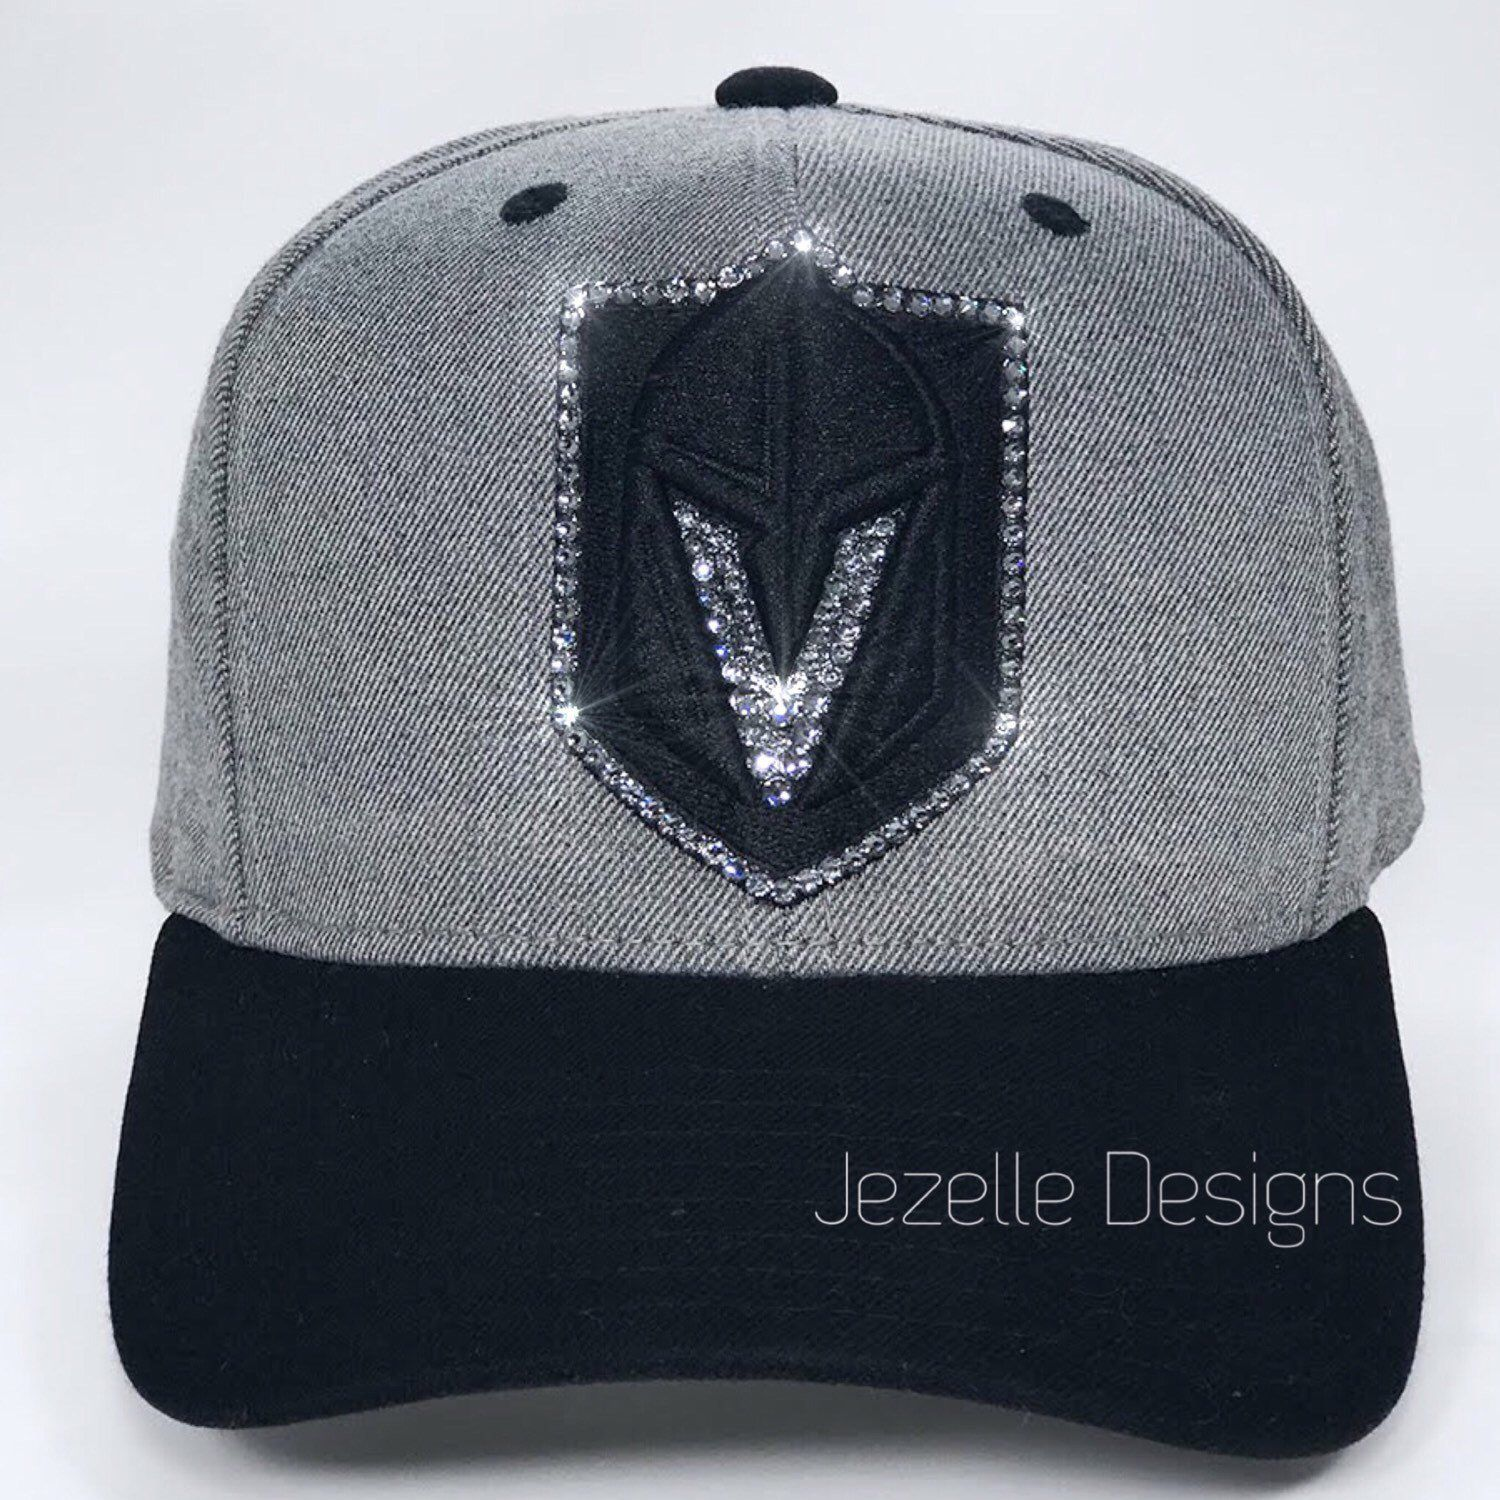 VGK Custom Swarovski Crystal Hand Jeweled Hats by Jezelle Designs!   blingbling dd7887aa070